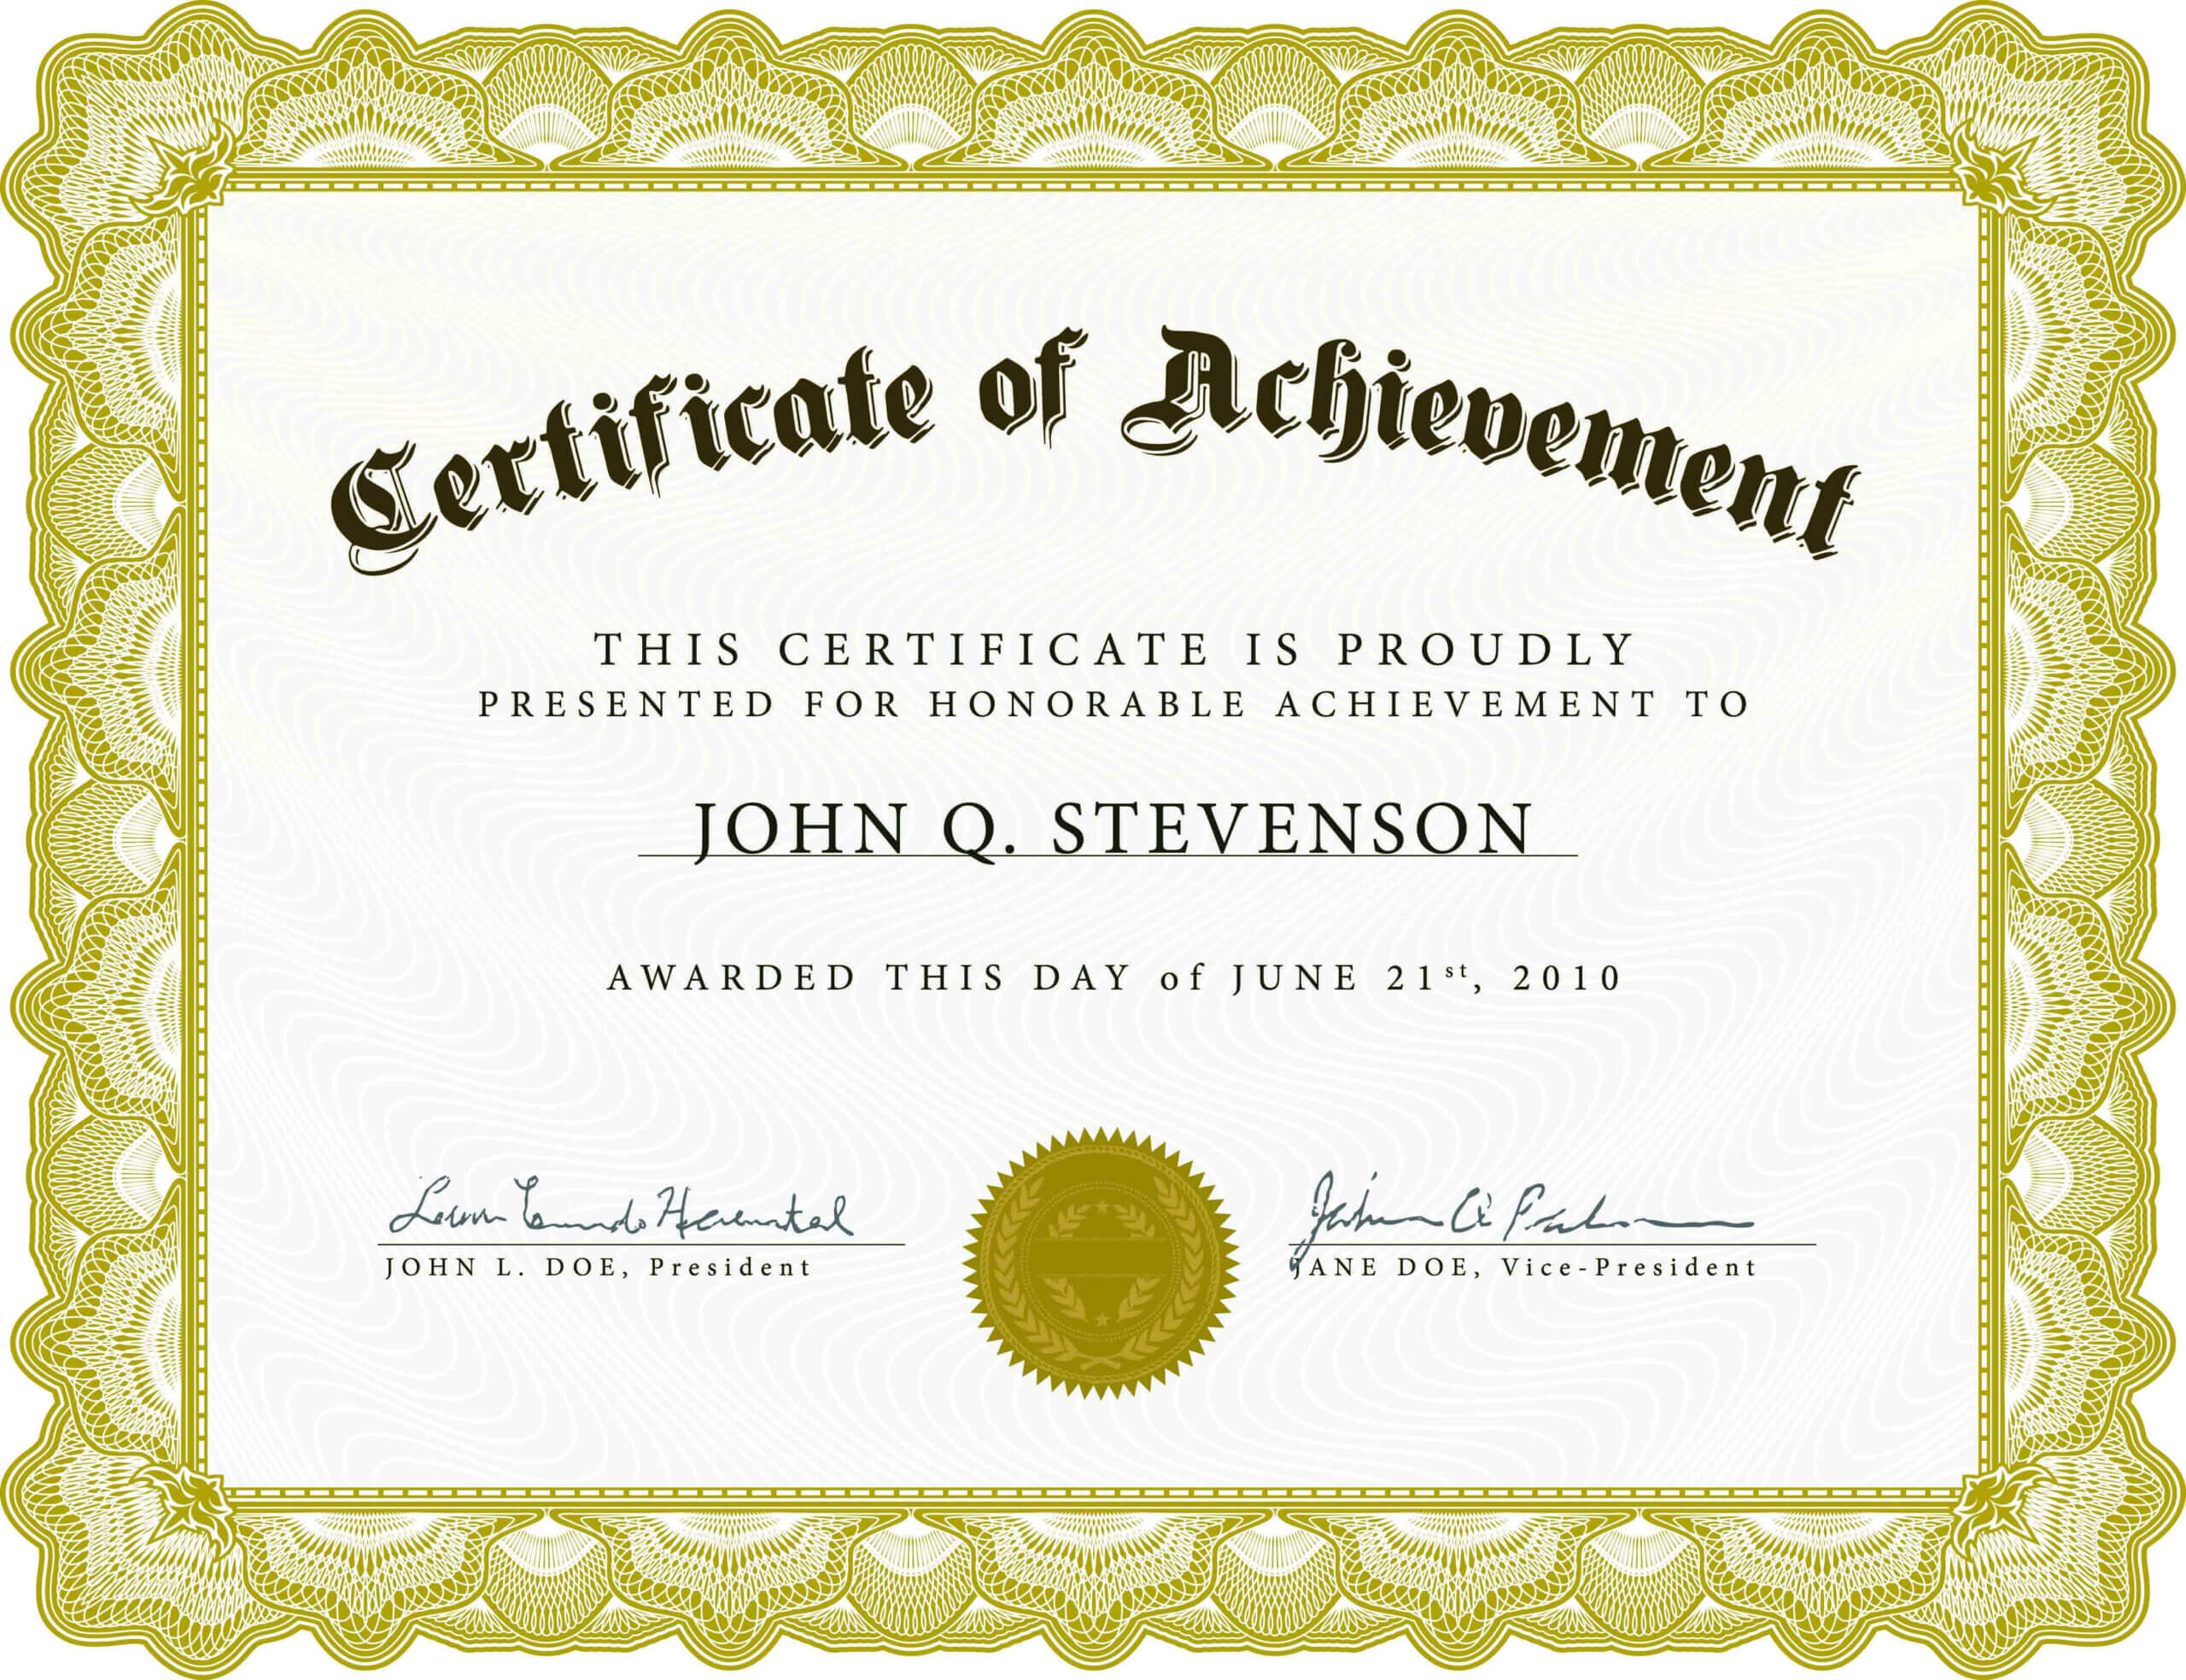 Professional Award Certificates - Forza.mbiconsultingltd For Downloadable Certificate Templates For Microsoft Word